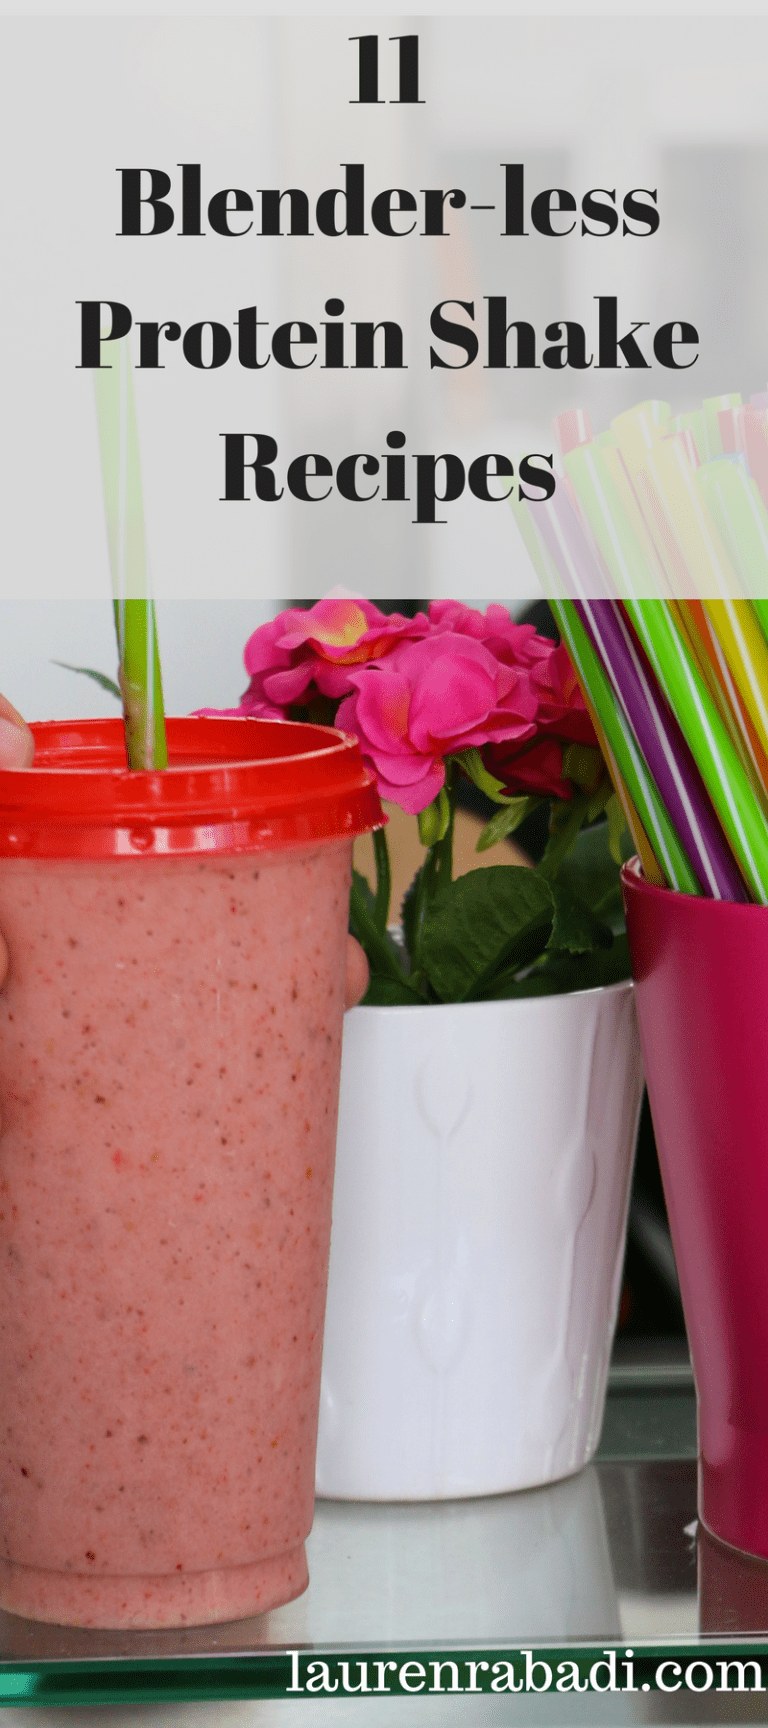 11 Blender-less Protein Shake Recipes Using My Blender Bottle #proteinshakes